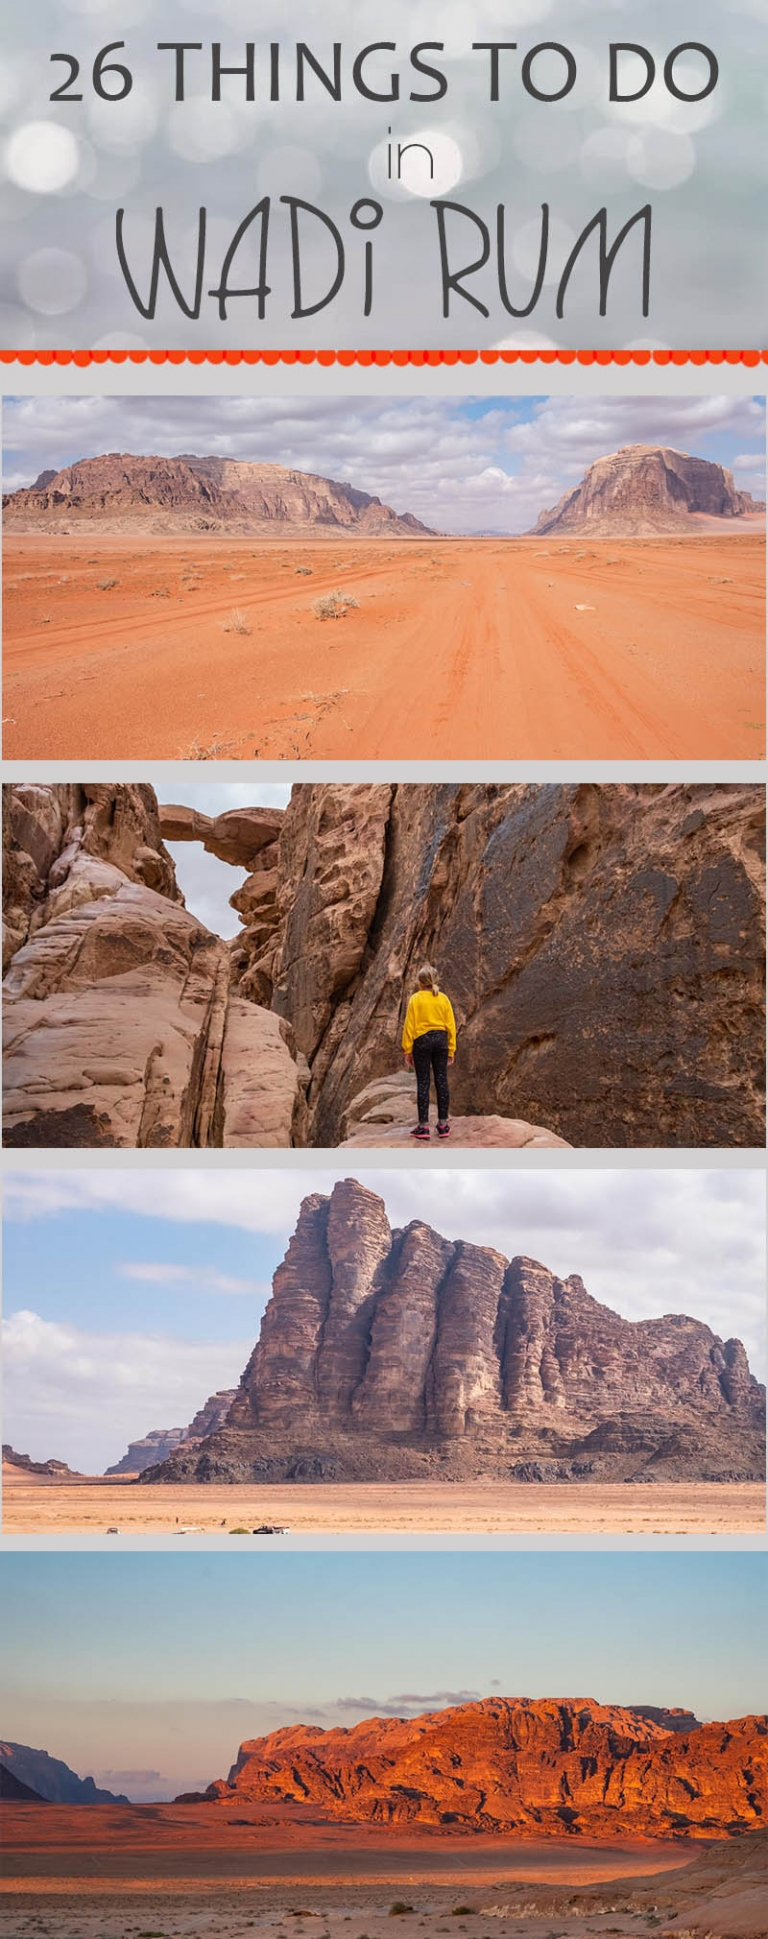 26 things you can do in Wadi Rum from Um sabatah Camp